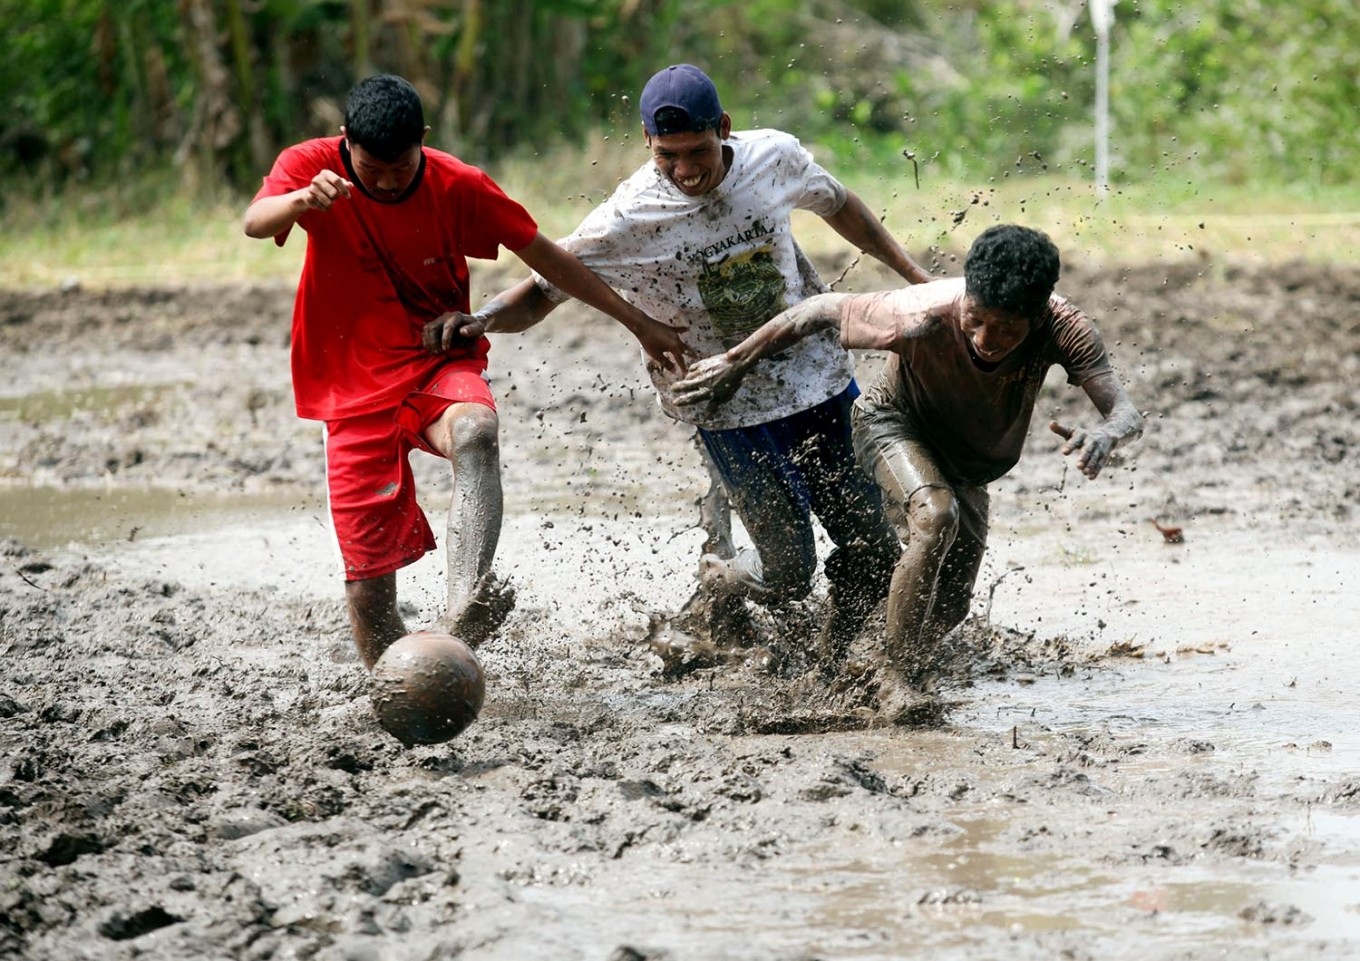 Mud soccer commemorates Independence Day